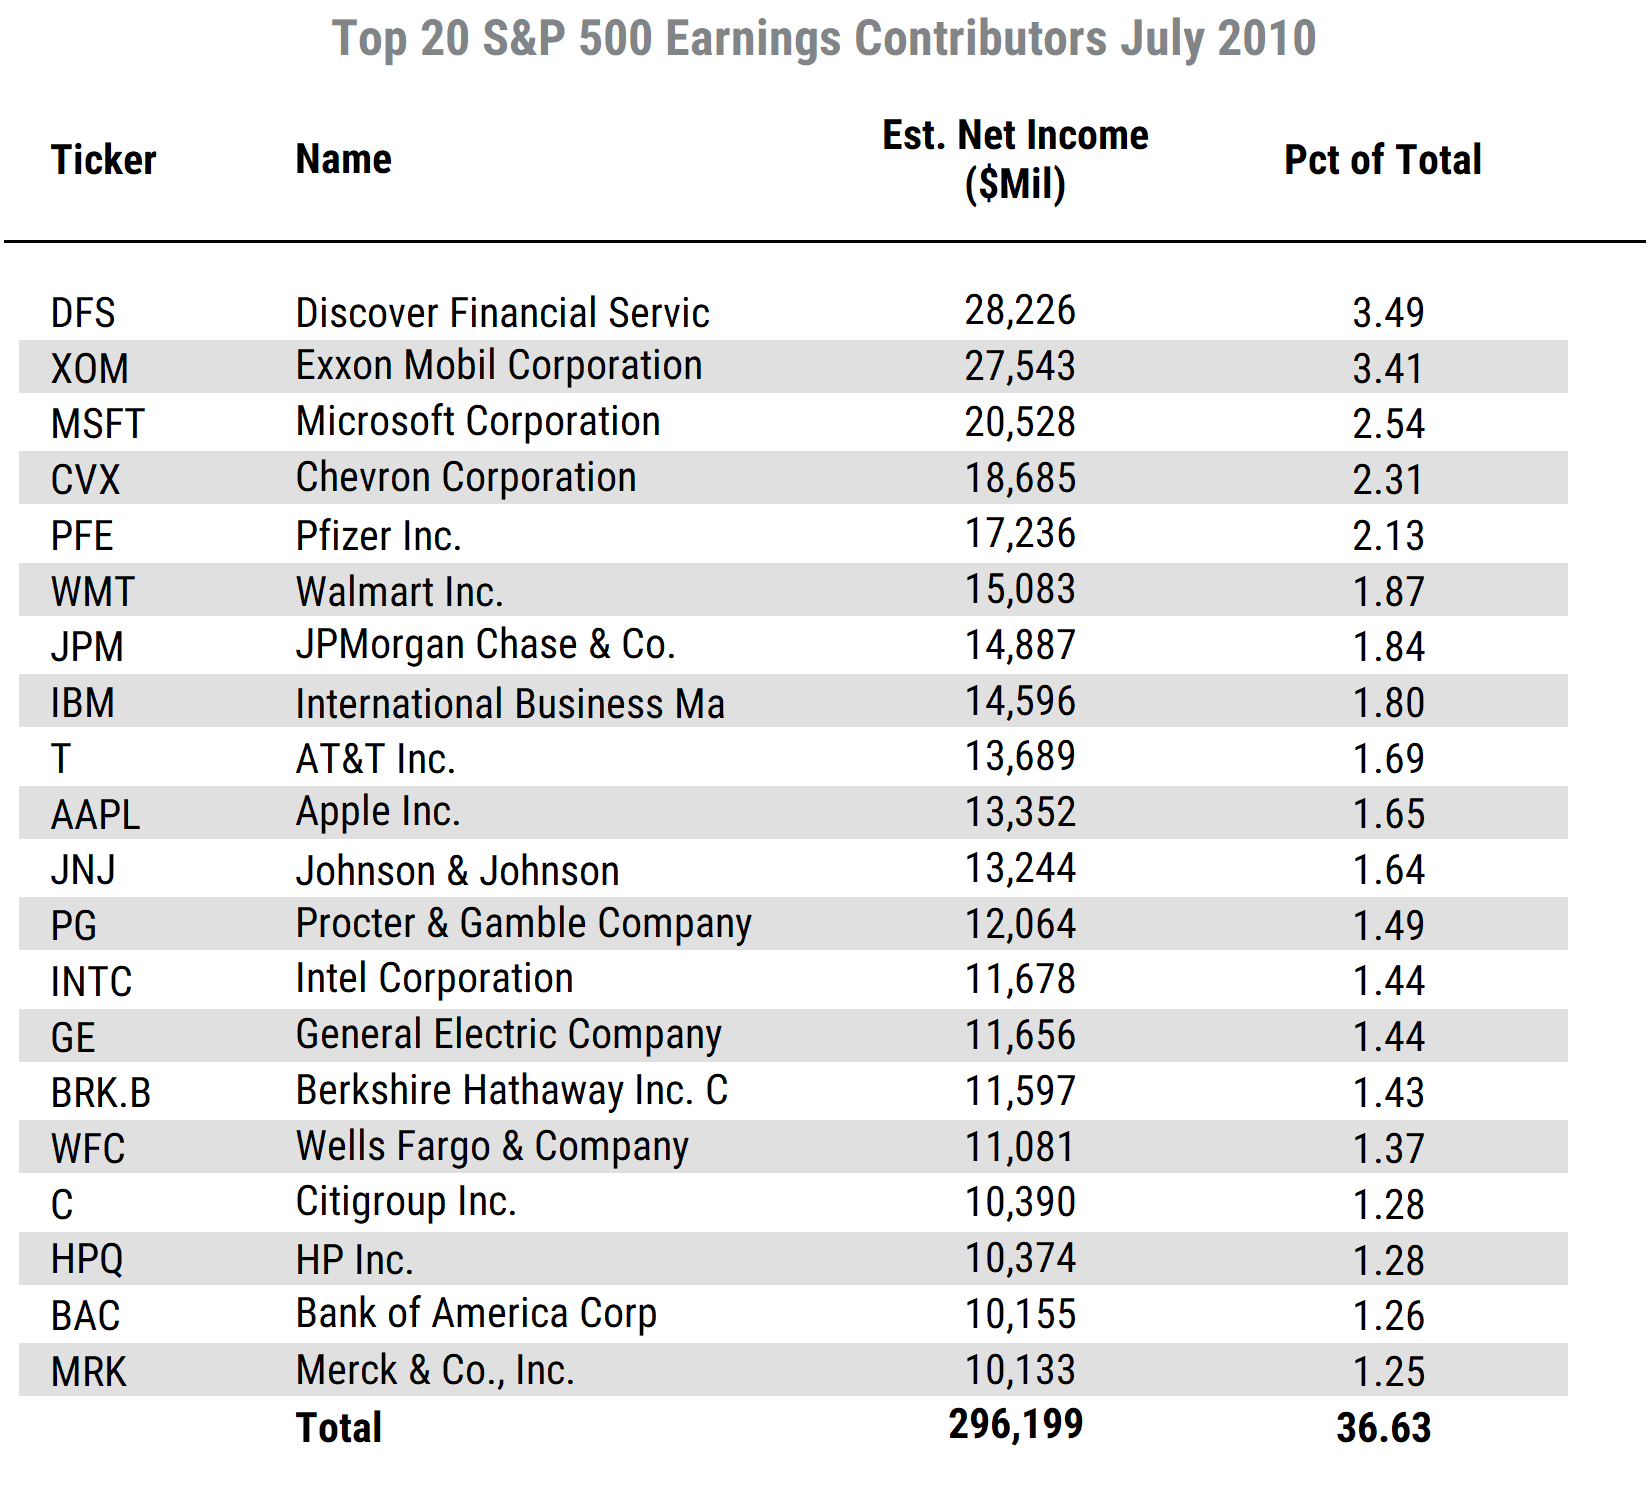 List of Top 20 SP500 Net Inc 10 yrs Ago